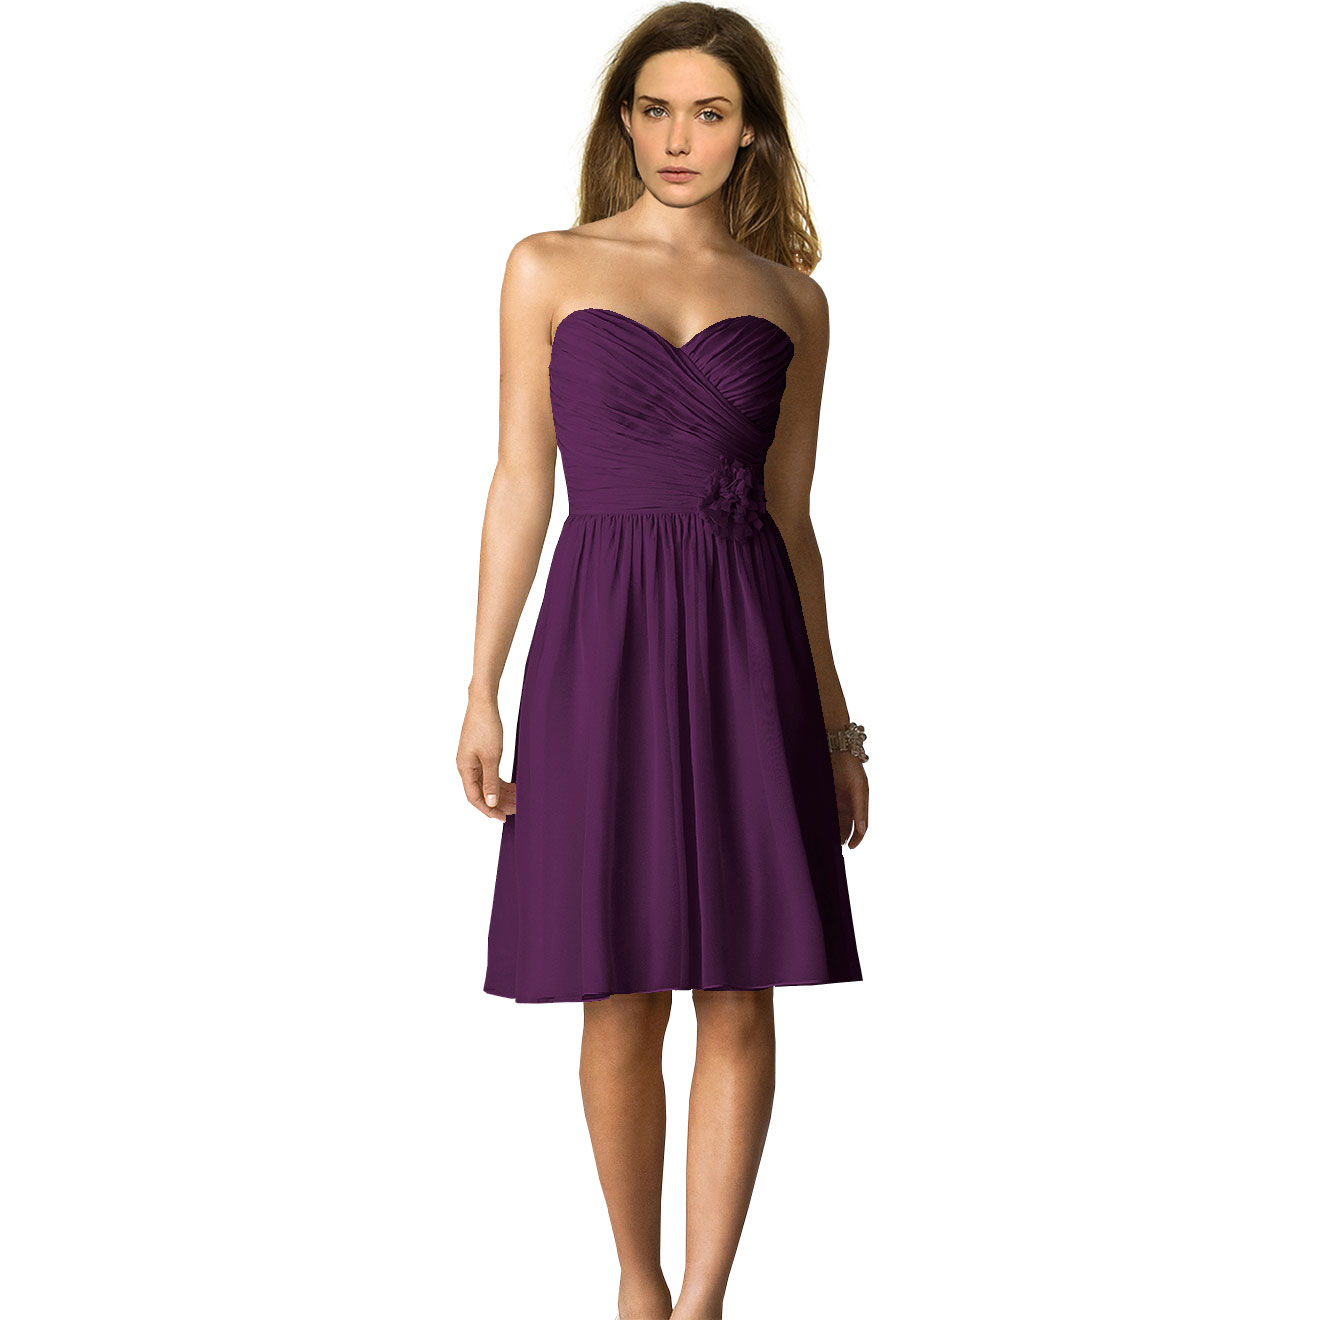 Short deep purple bridesmaid dresses budget bridesmaid uk shopping short deep purple bridesmaid dresses ombrellifo Image collections